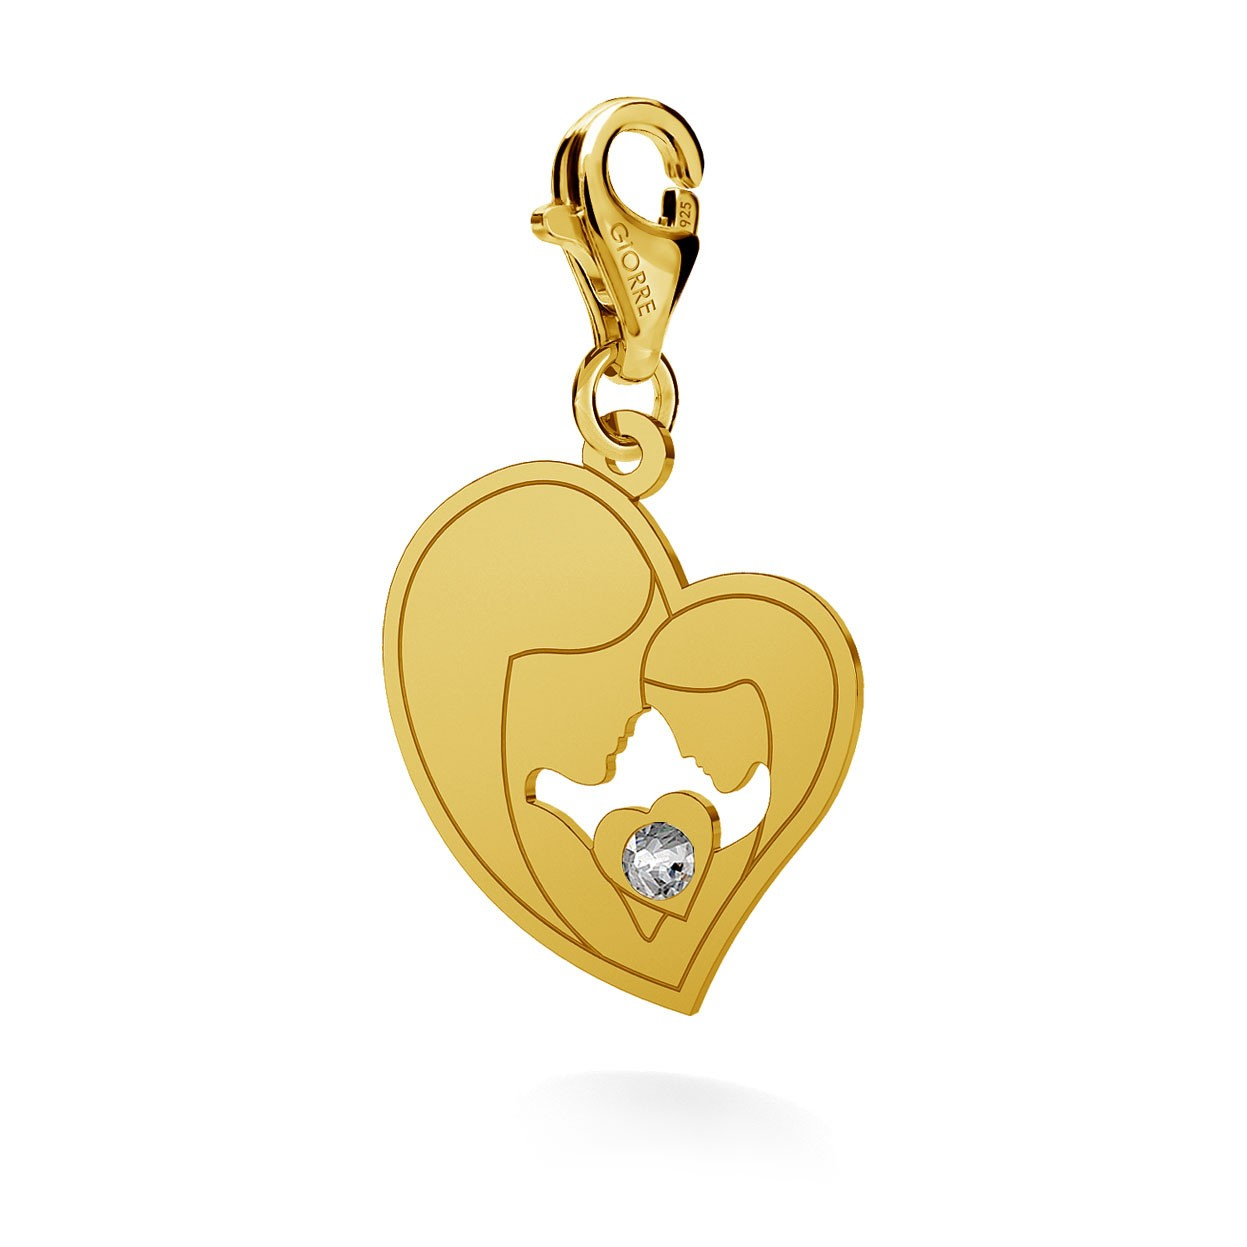 CHARM 91, MOTHER AND DOUGHTER, SWAROVSKI 2038 SS 6, STERLING SILVER (925) RHODIUM OR GOLD PLATED